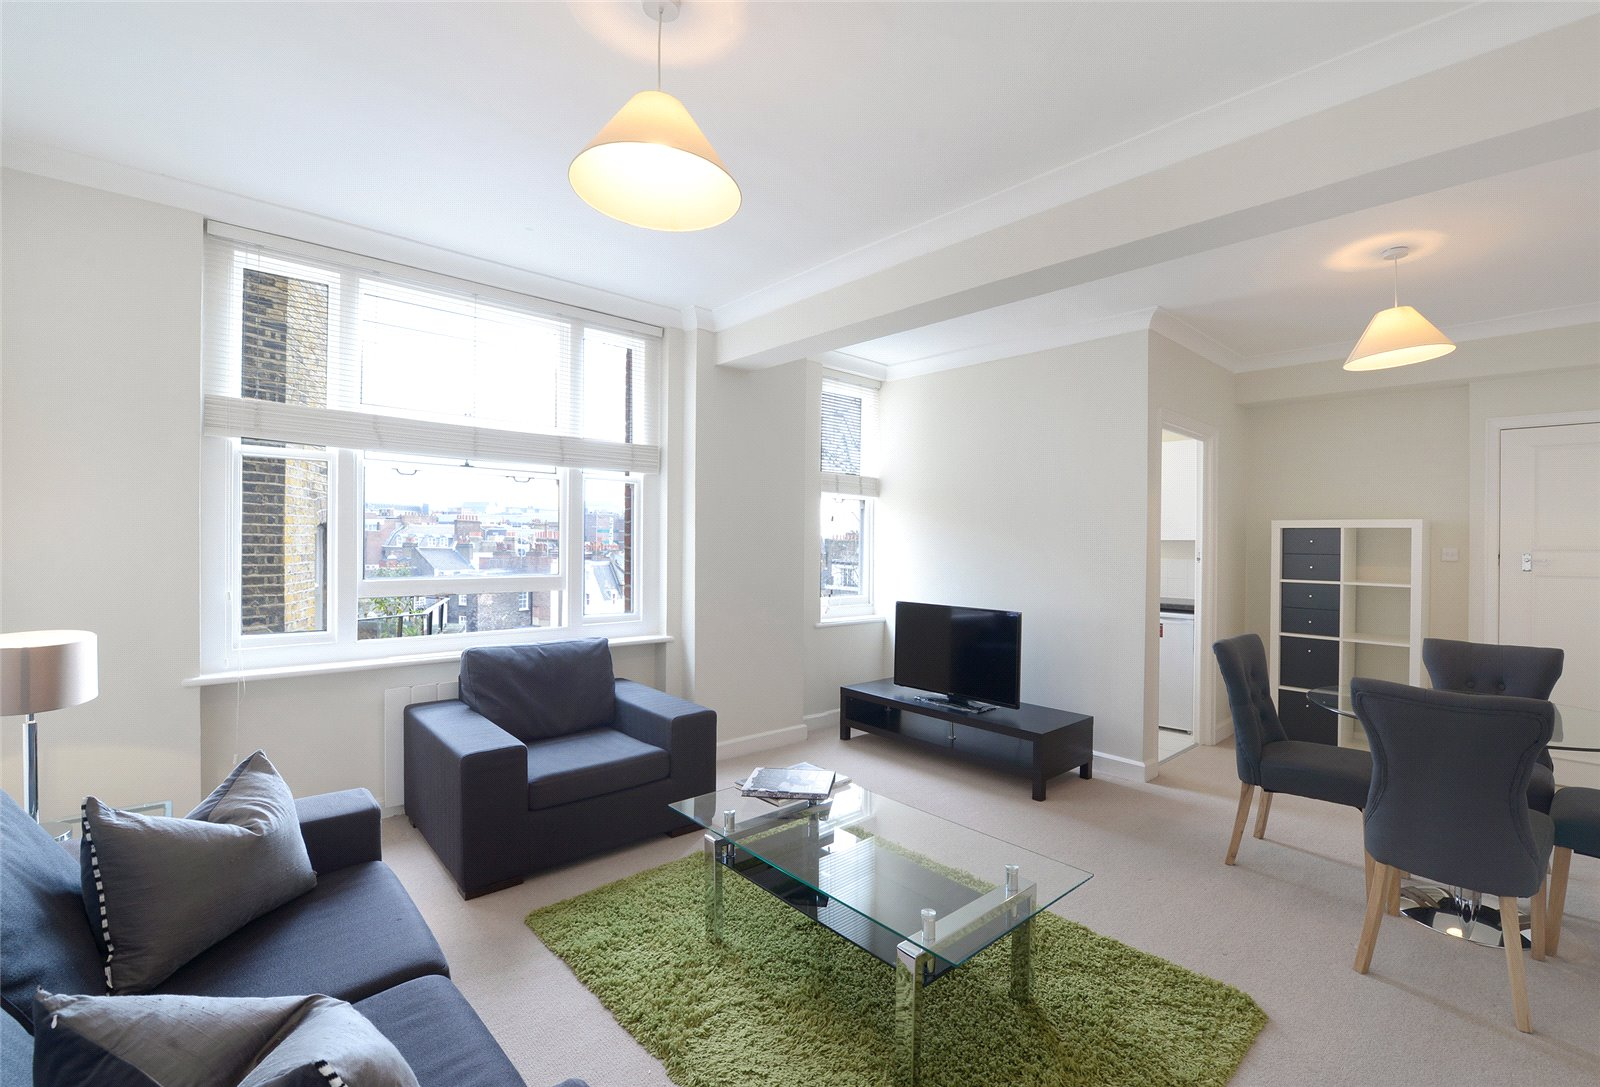 Apartment for Rent at Hill Street, Mayfair, London, W1J Hill Street, Mayfair, London, W1J